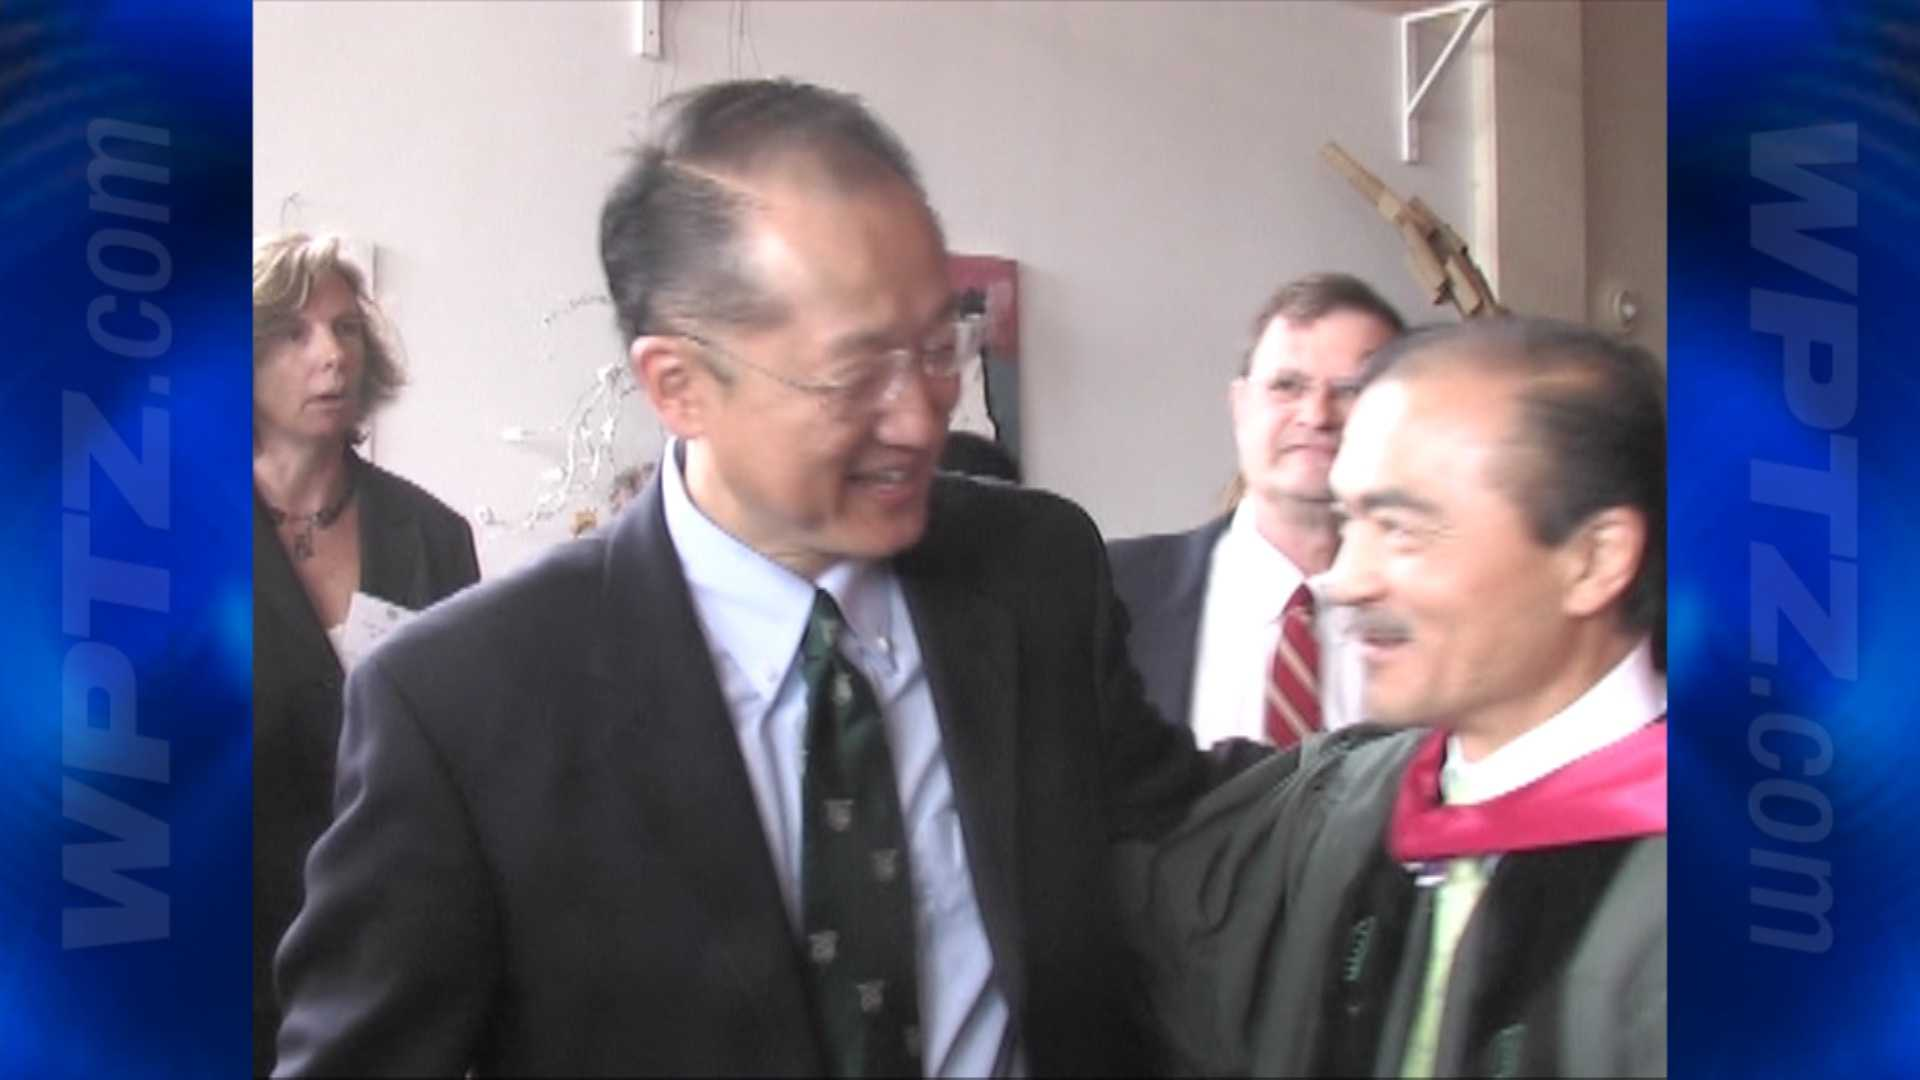 Jim Yong Kim, seen here at the beginning of his presidency at Dartmouth College in 2009, is President Obama's nominee to lead the World Bank.